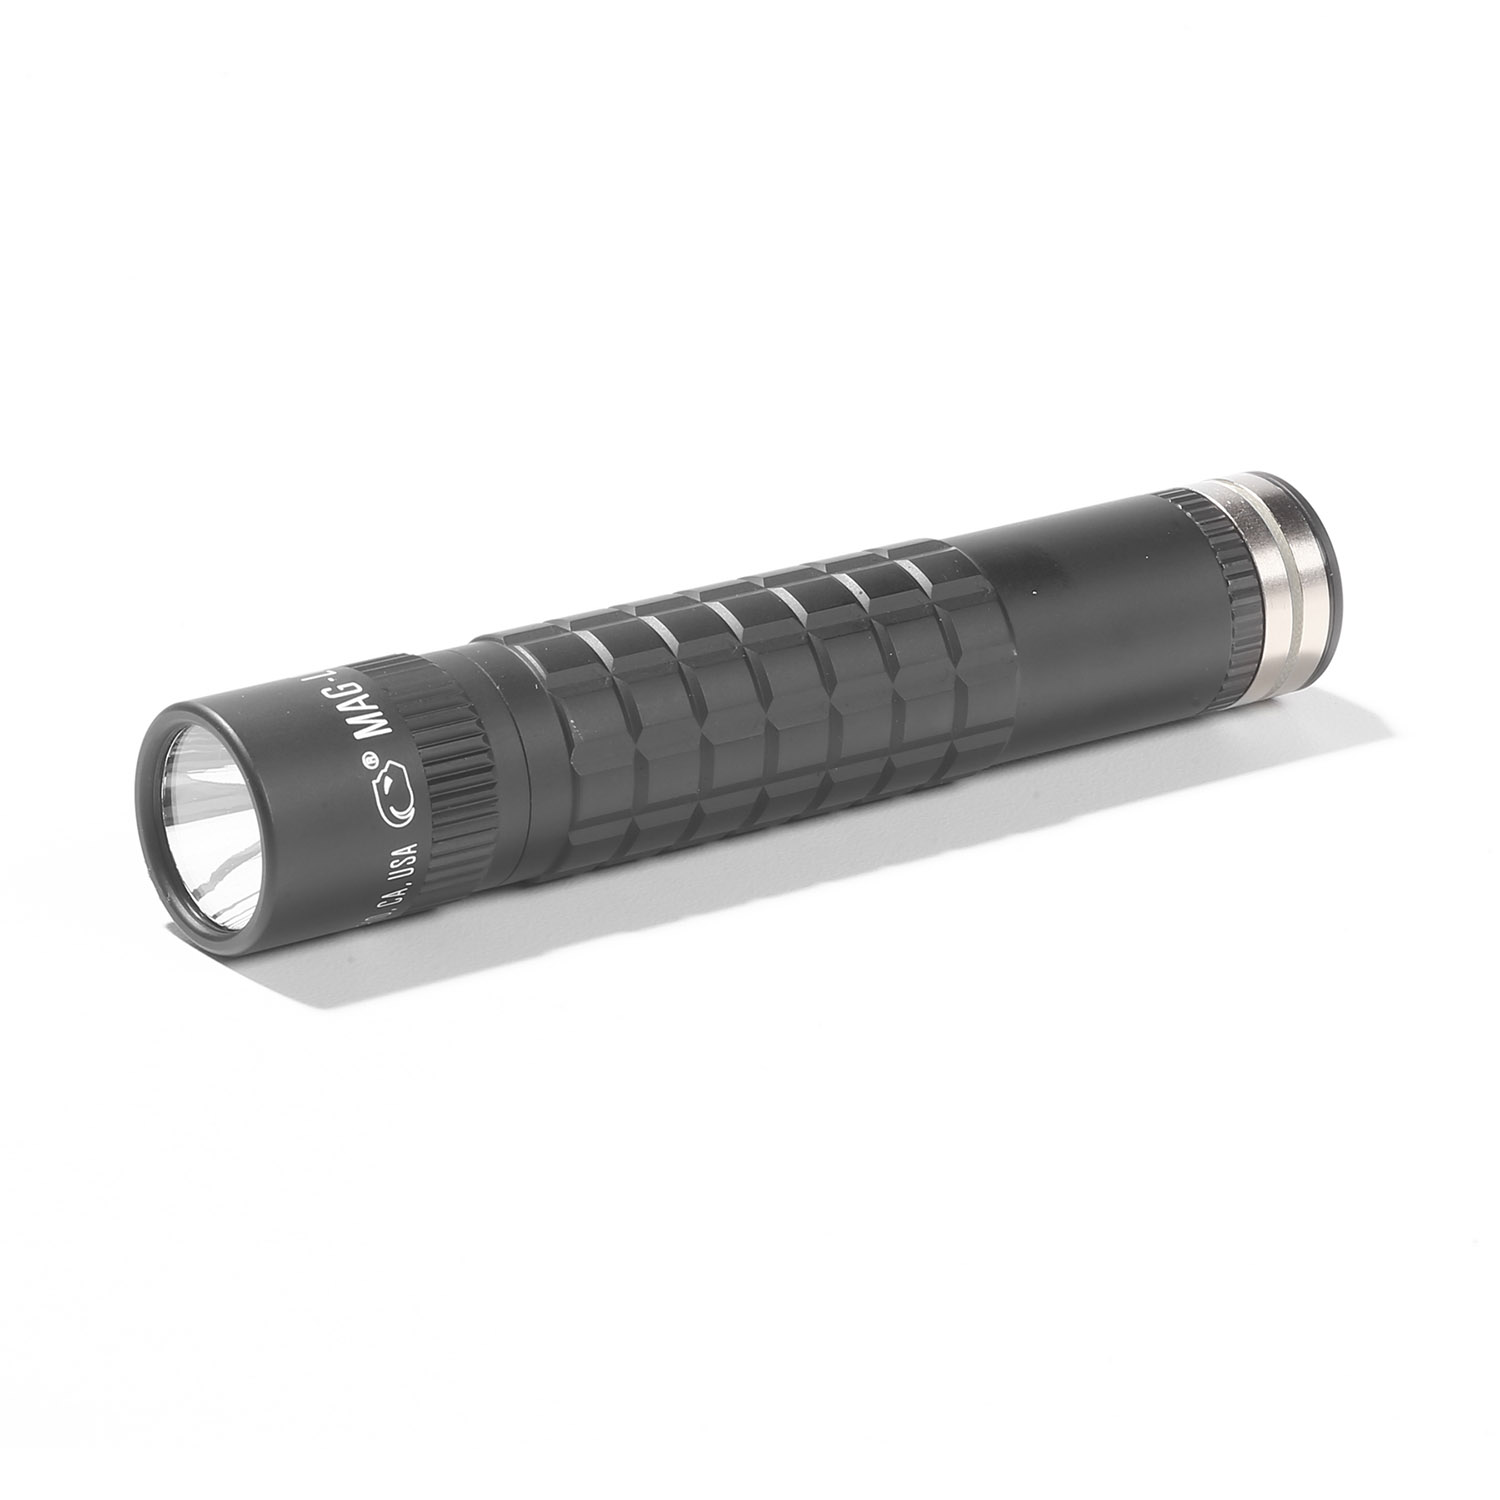 MagLite MagTac LED Rechargeable Flashlight with Plain Bezel